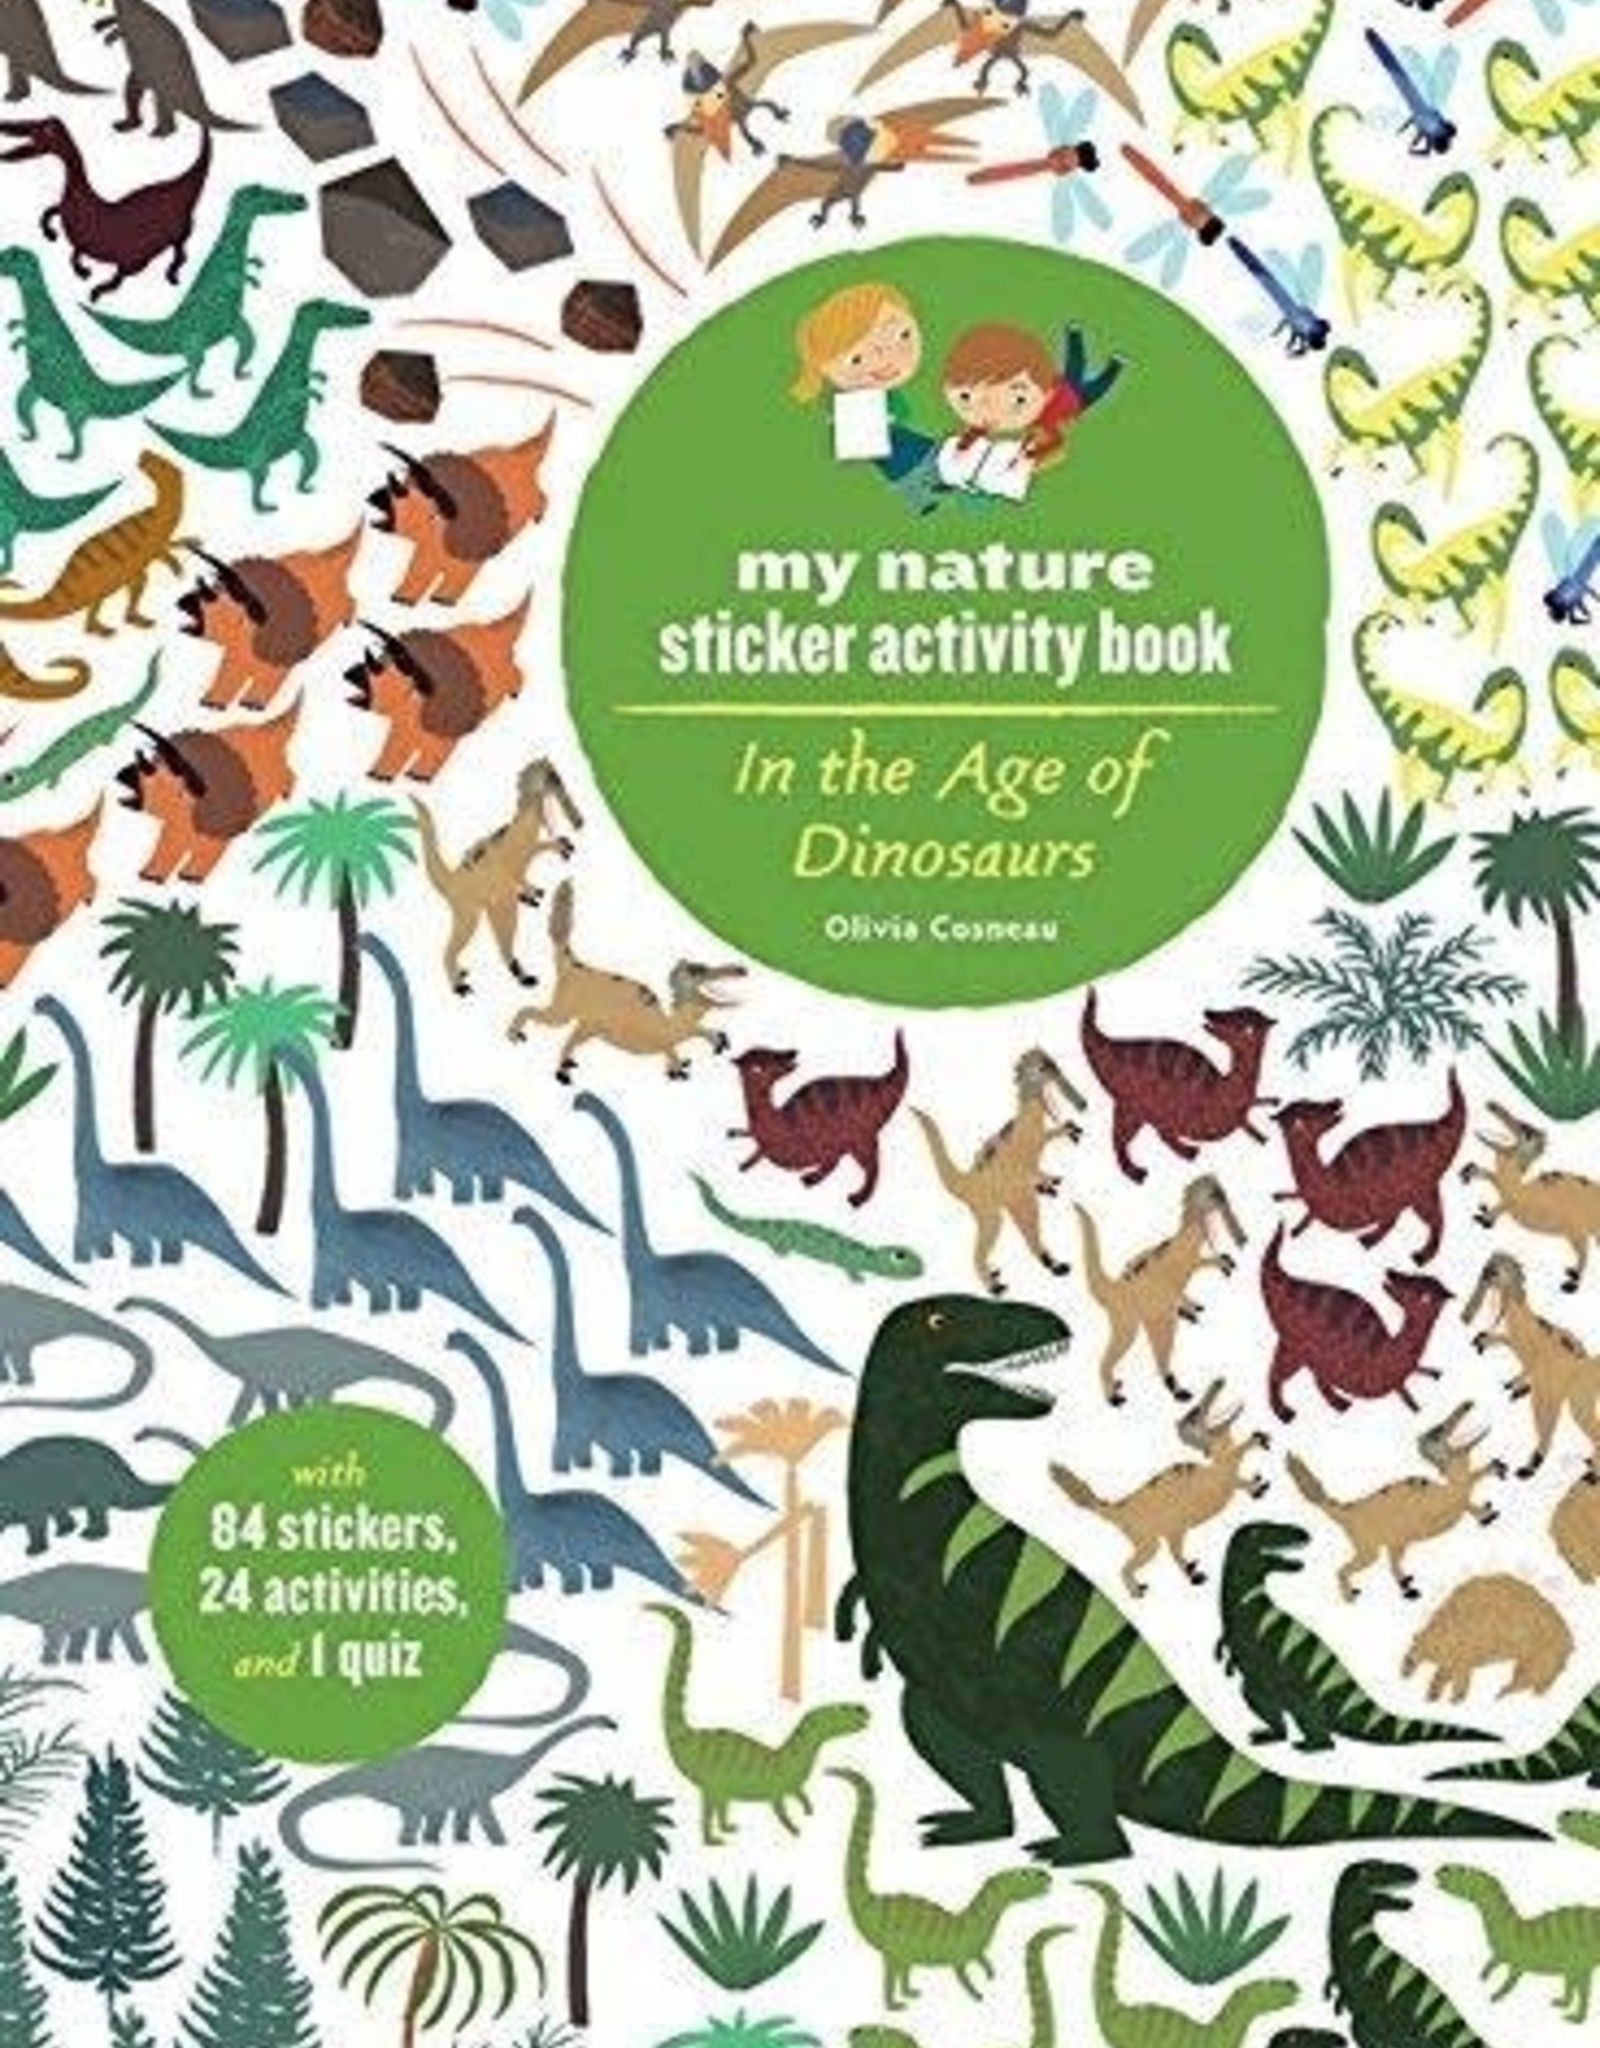 My Nature Sticker Activity Book - In the Age of Dinosaurs